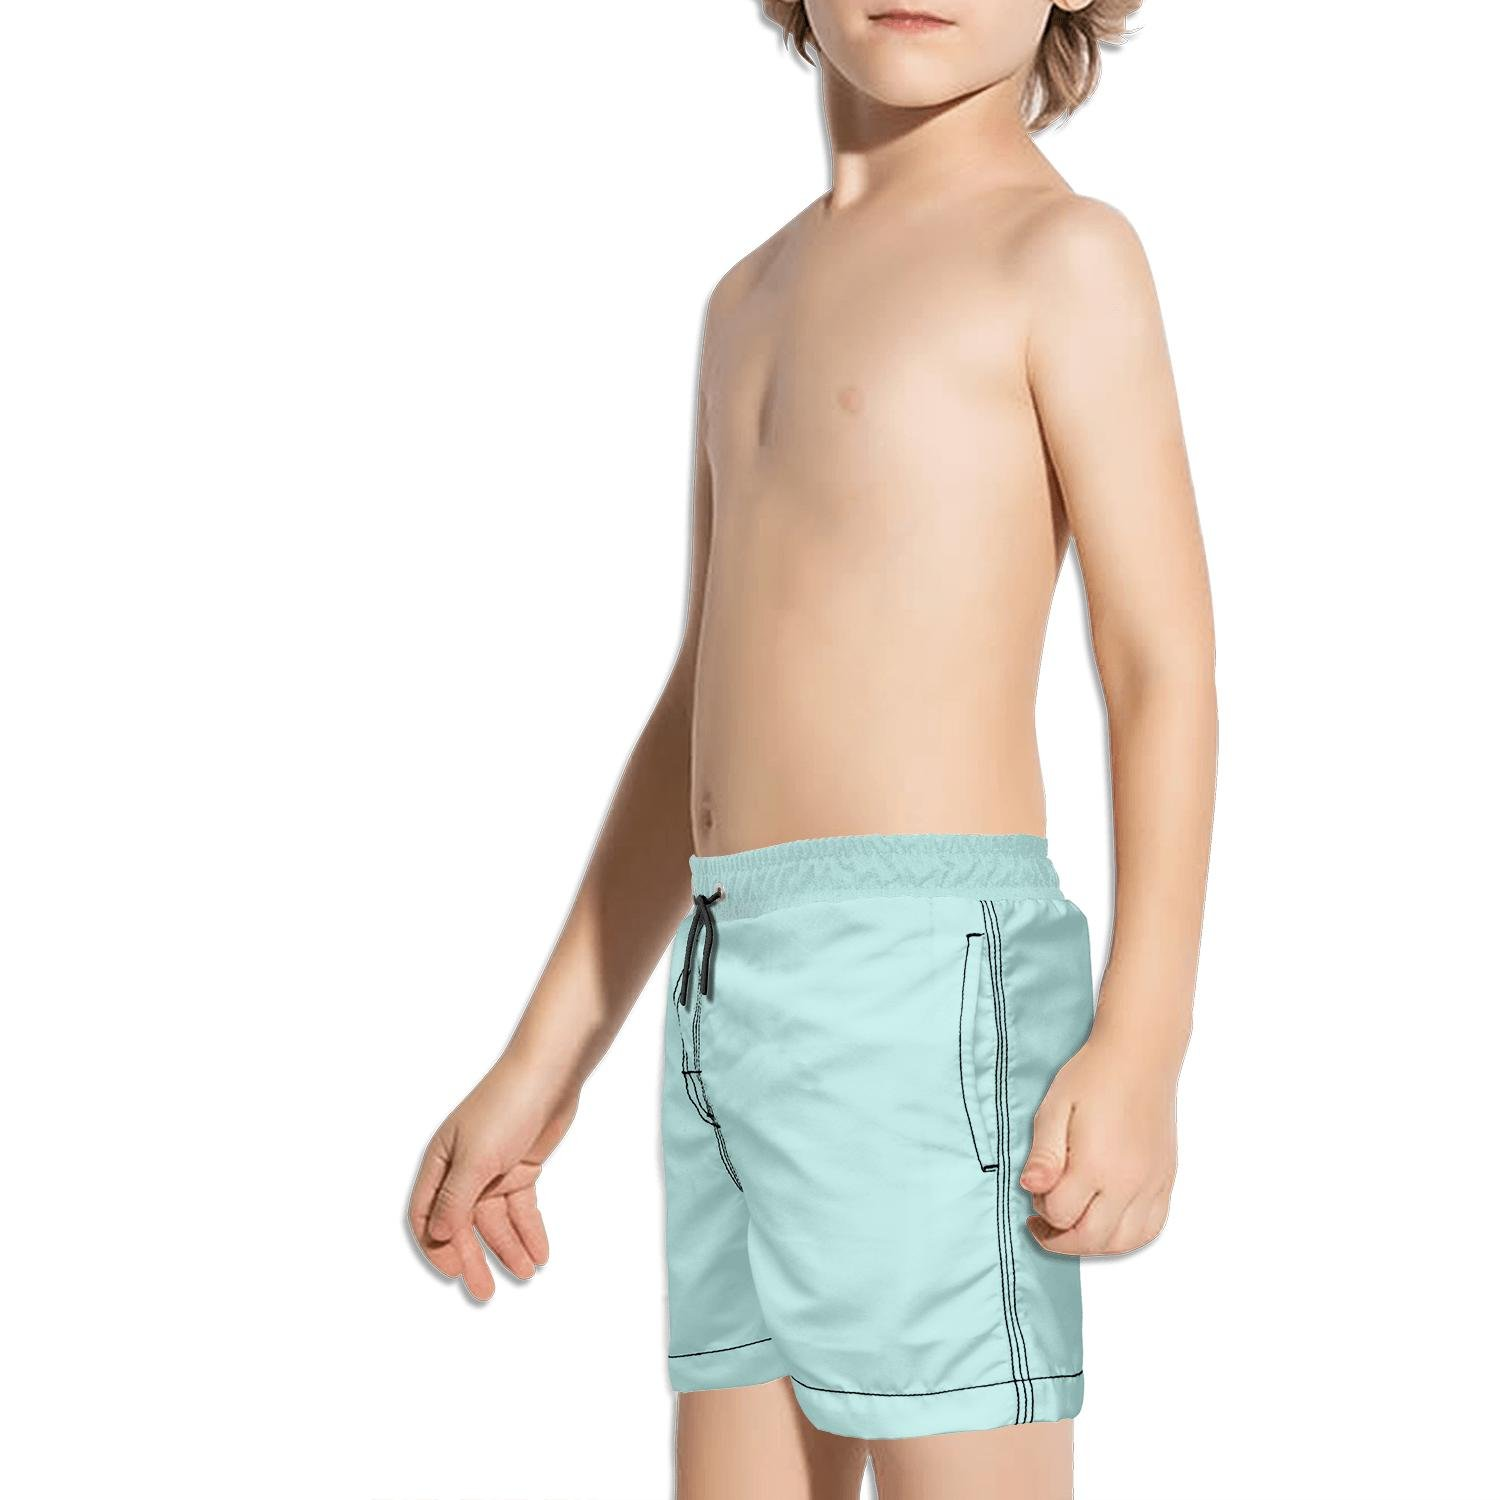 FullBo Vintage Flower Shiba Inu Yoga Pose Little Boys Short Swim Trunks Quick Dry Beach Shorts